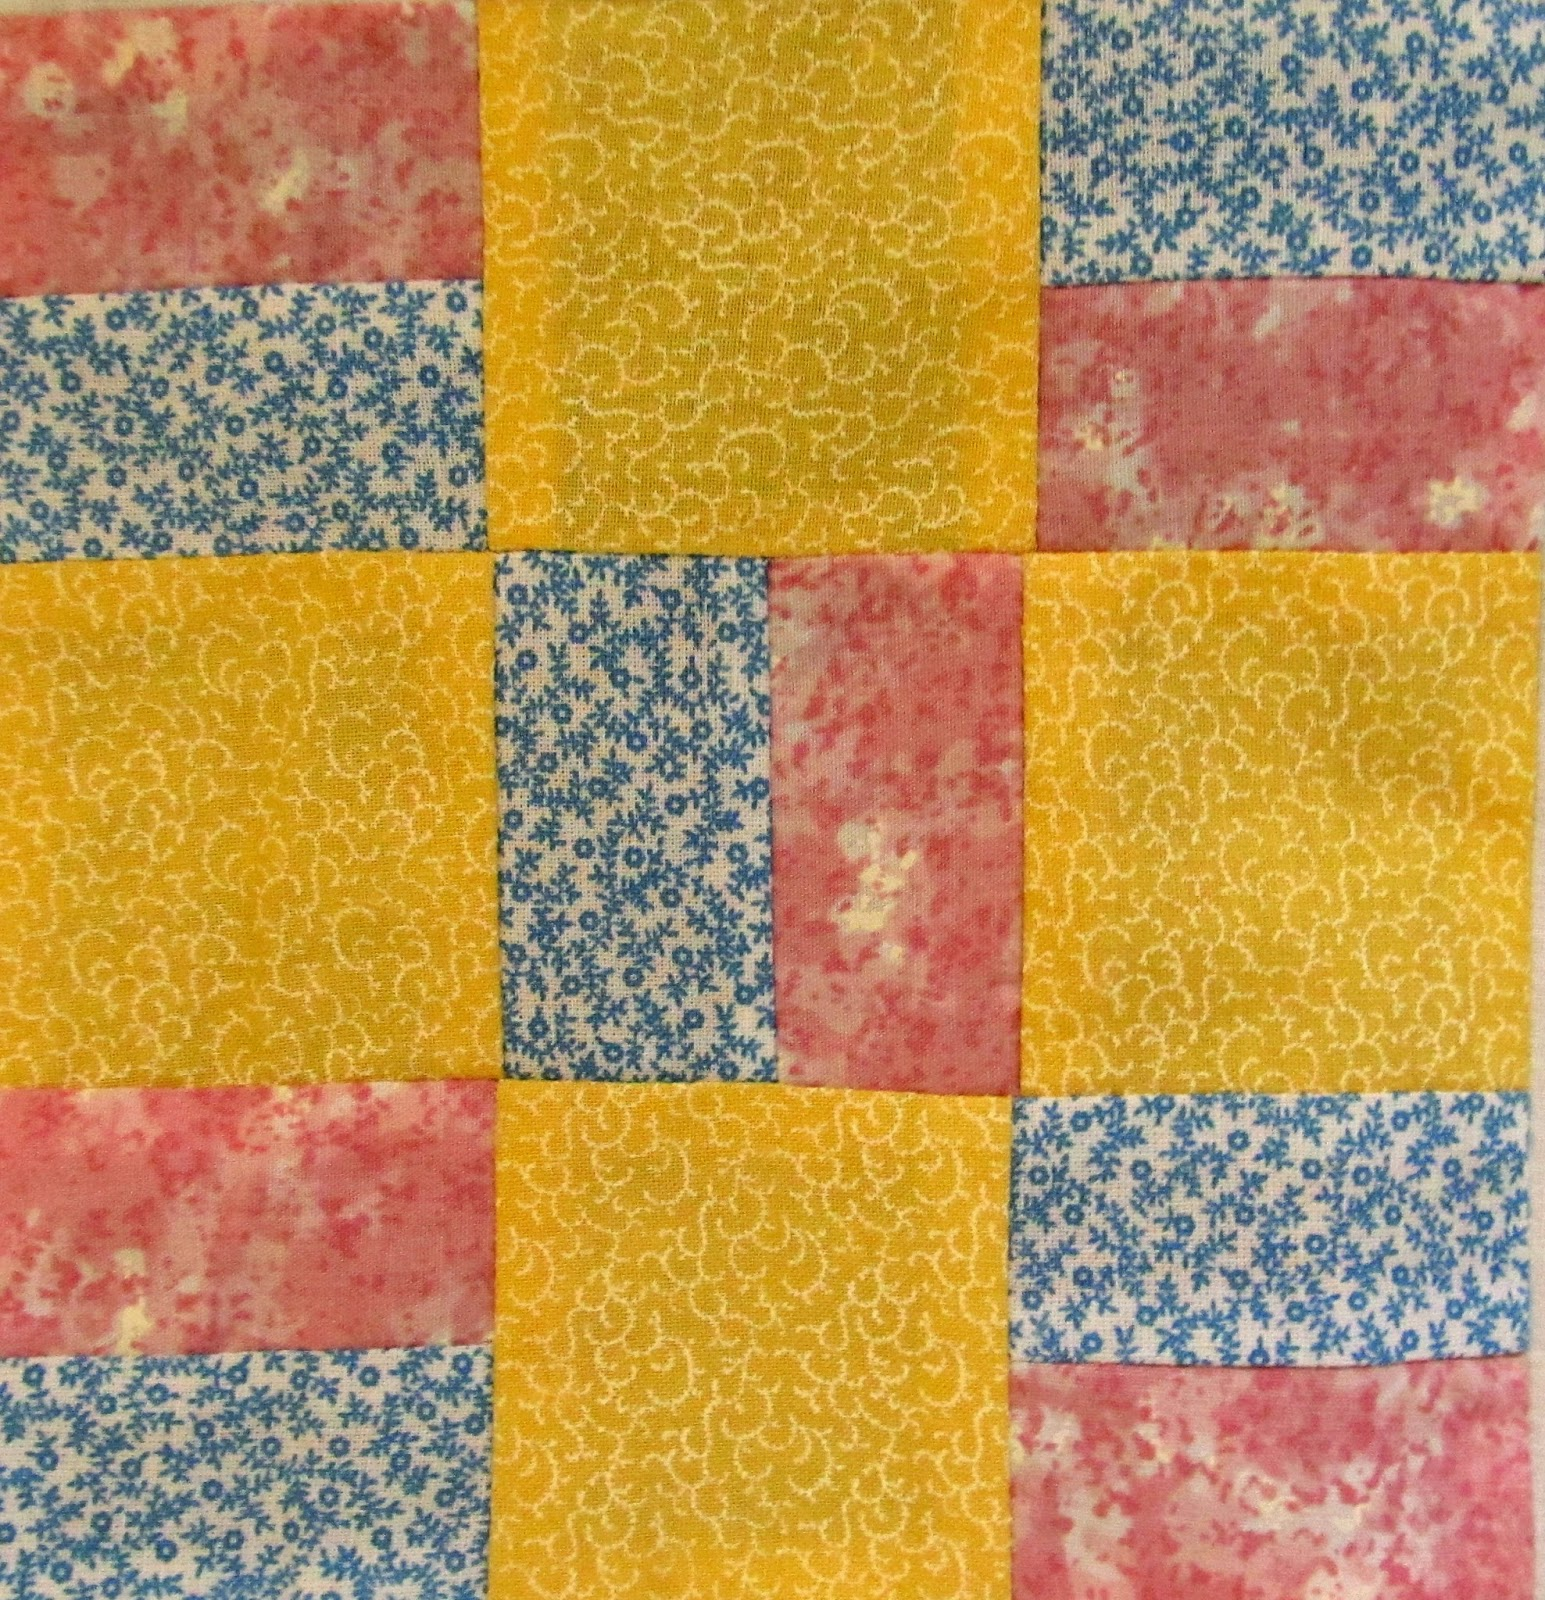 8 Inch Quilt Blocks Free Patterns : The Quilt Ladies Book Collection: Free Quilt Block ...